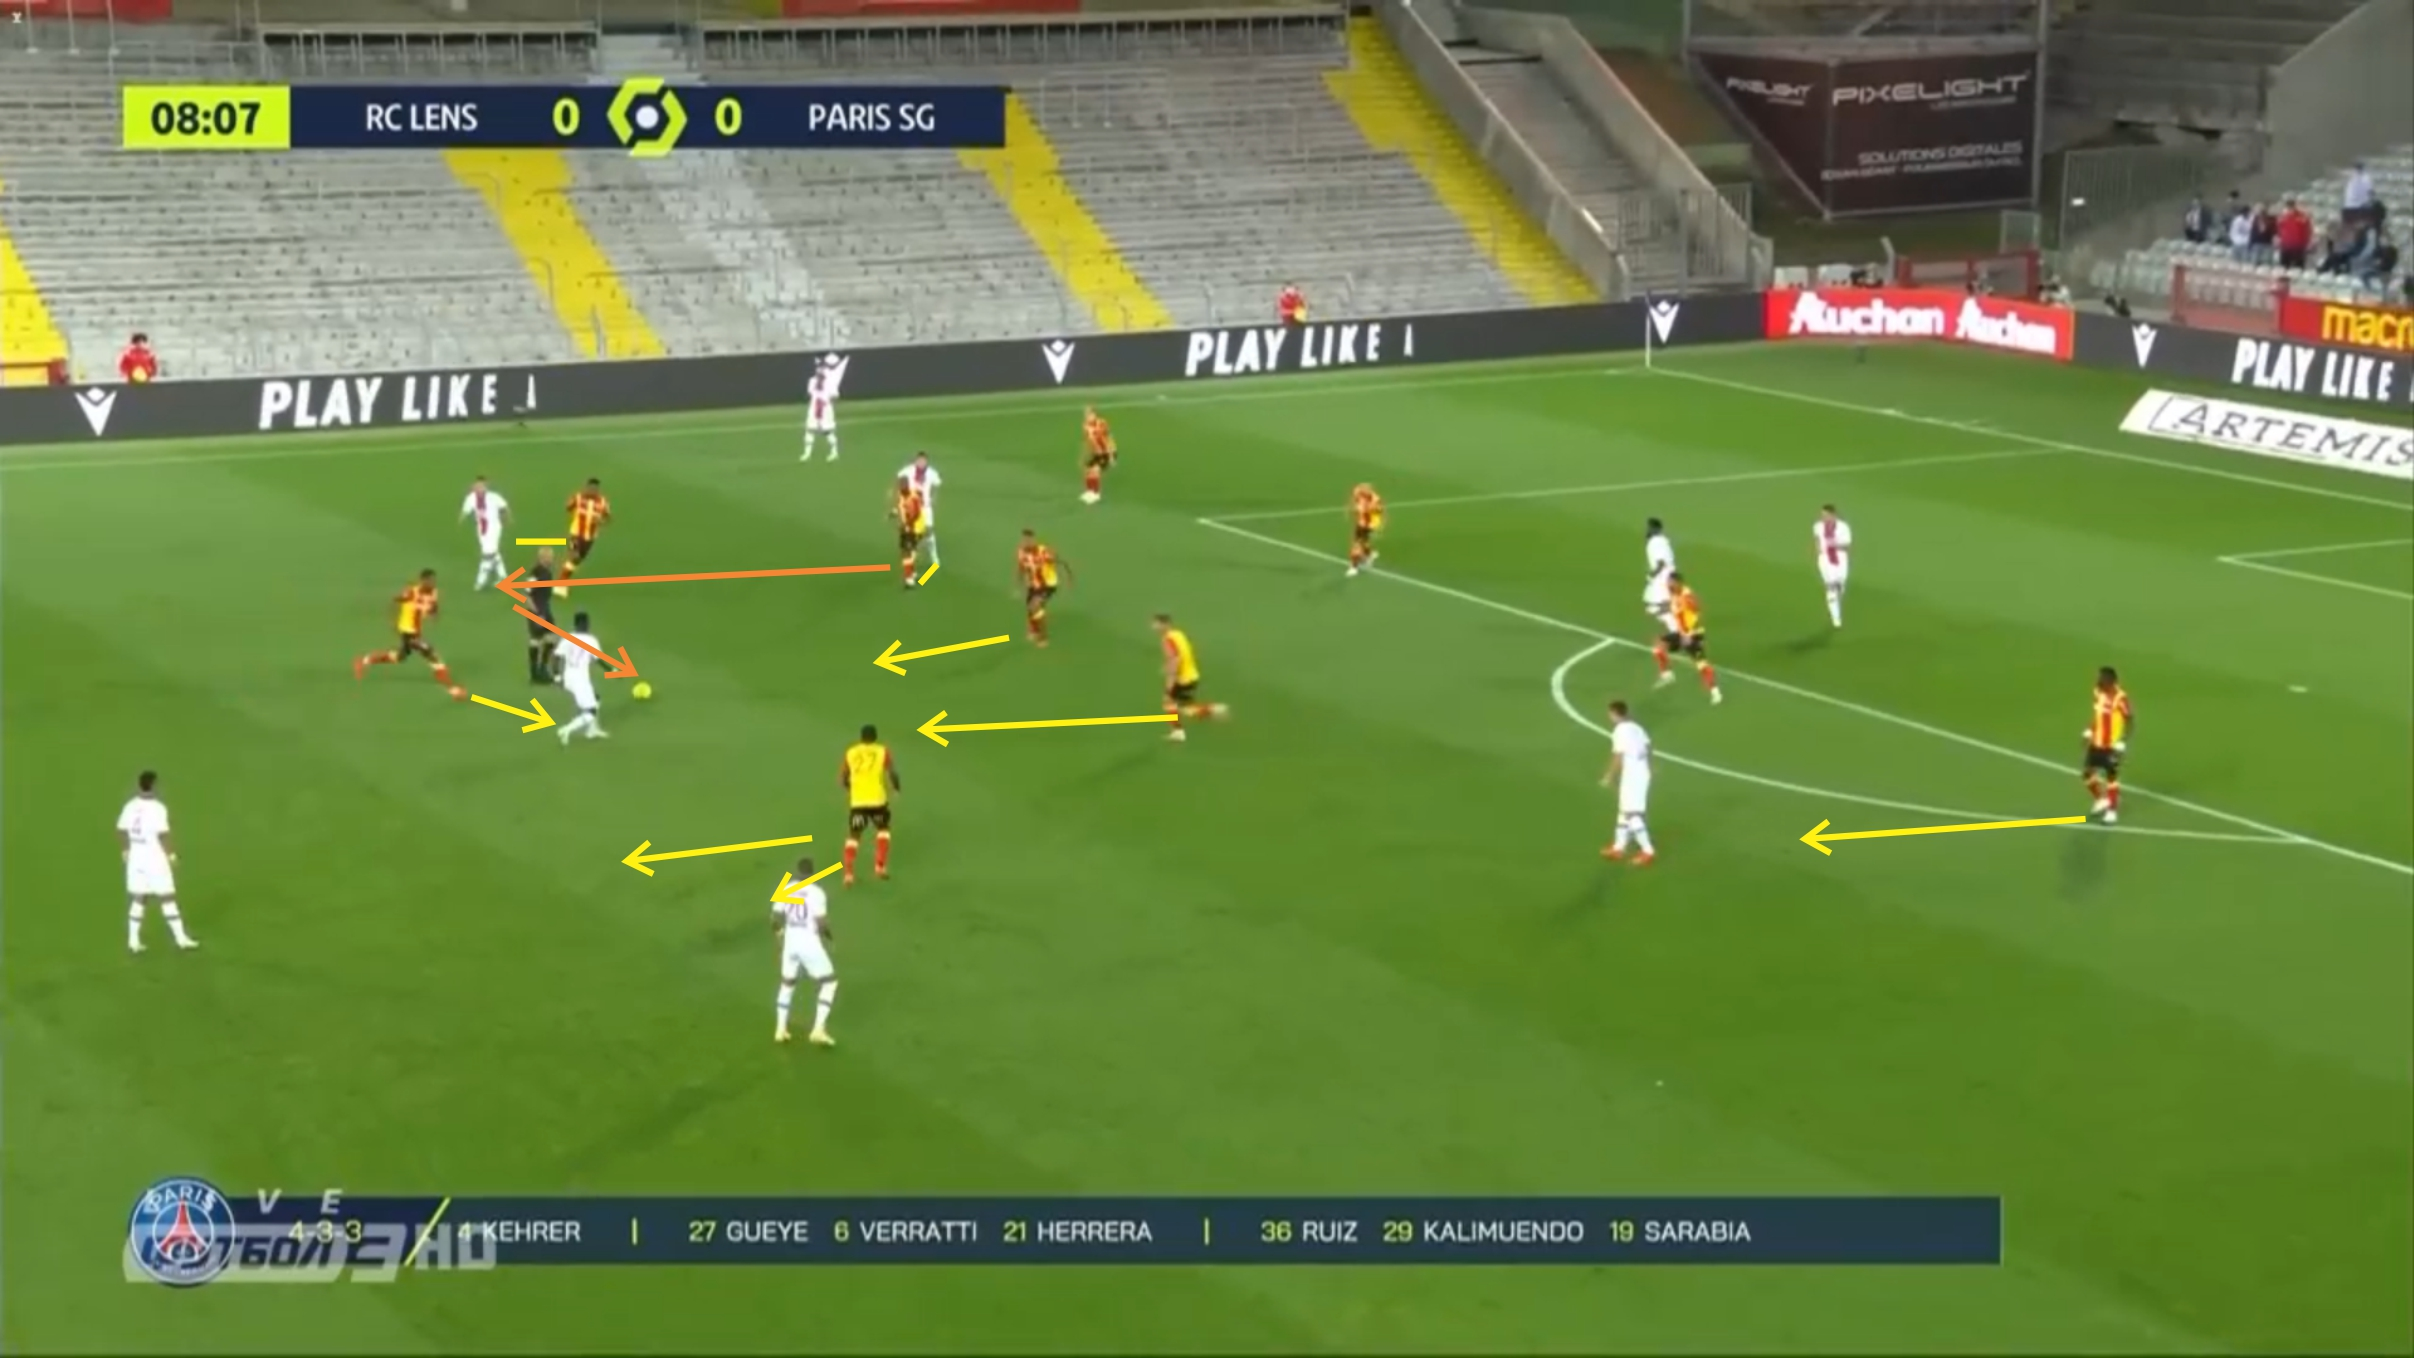 Ligue 1 2020/21: Lens vs Paris Saint-Germain - tactical analysis tactics